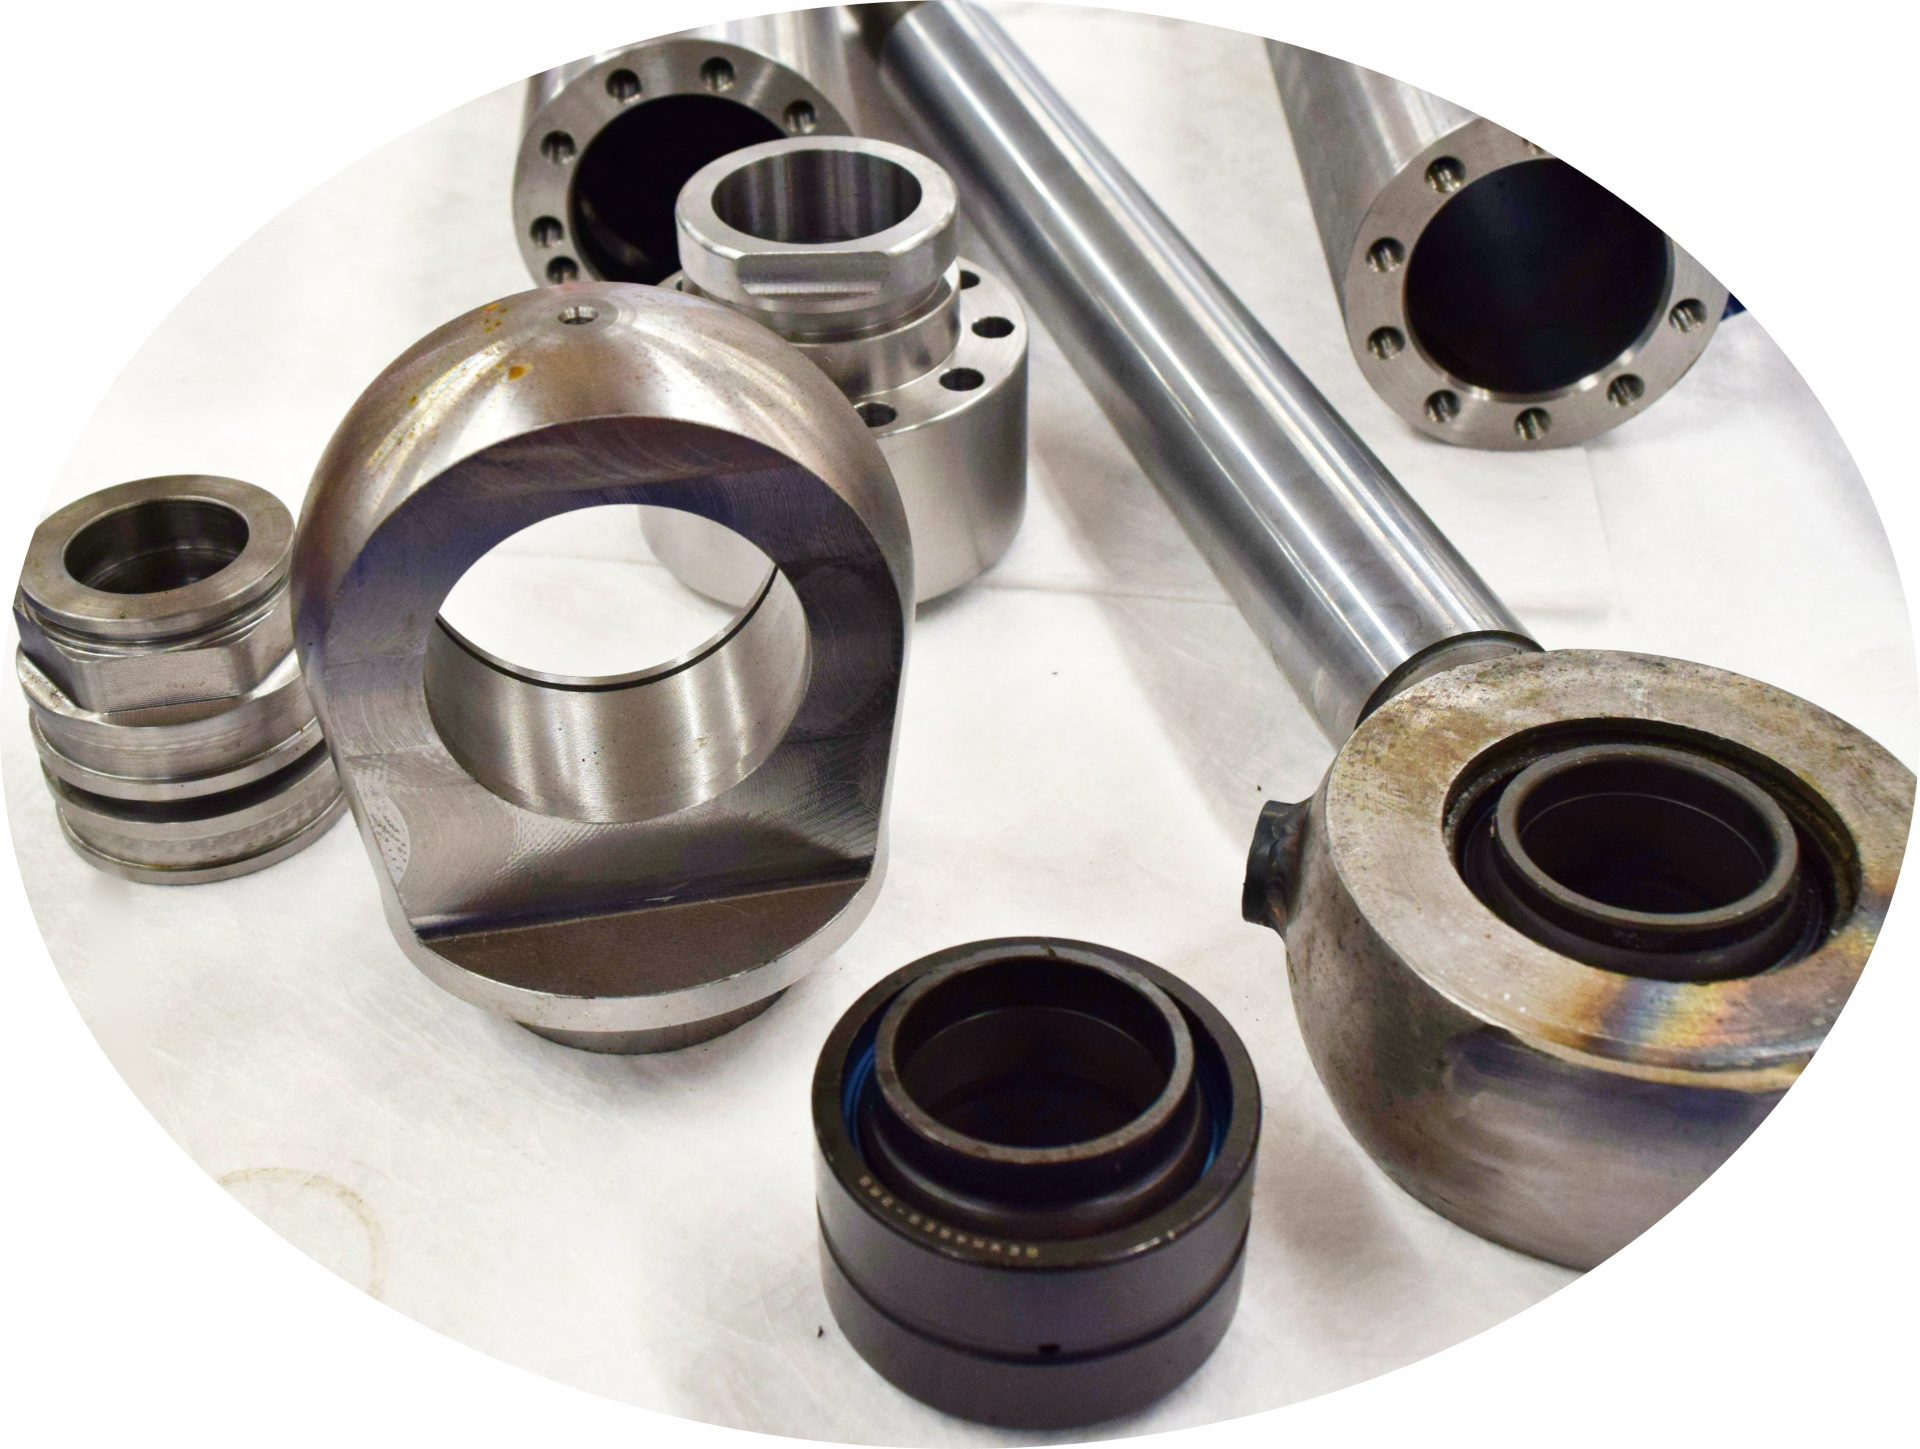 Machined-Cylinder Parts